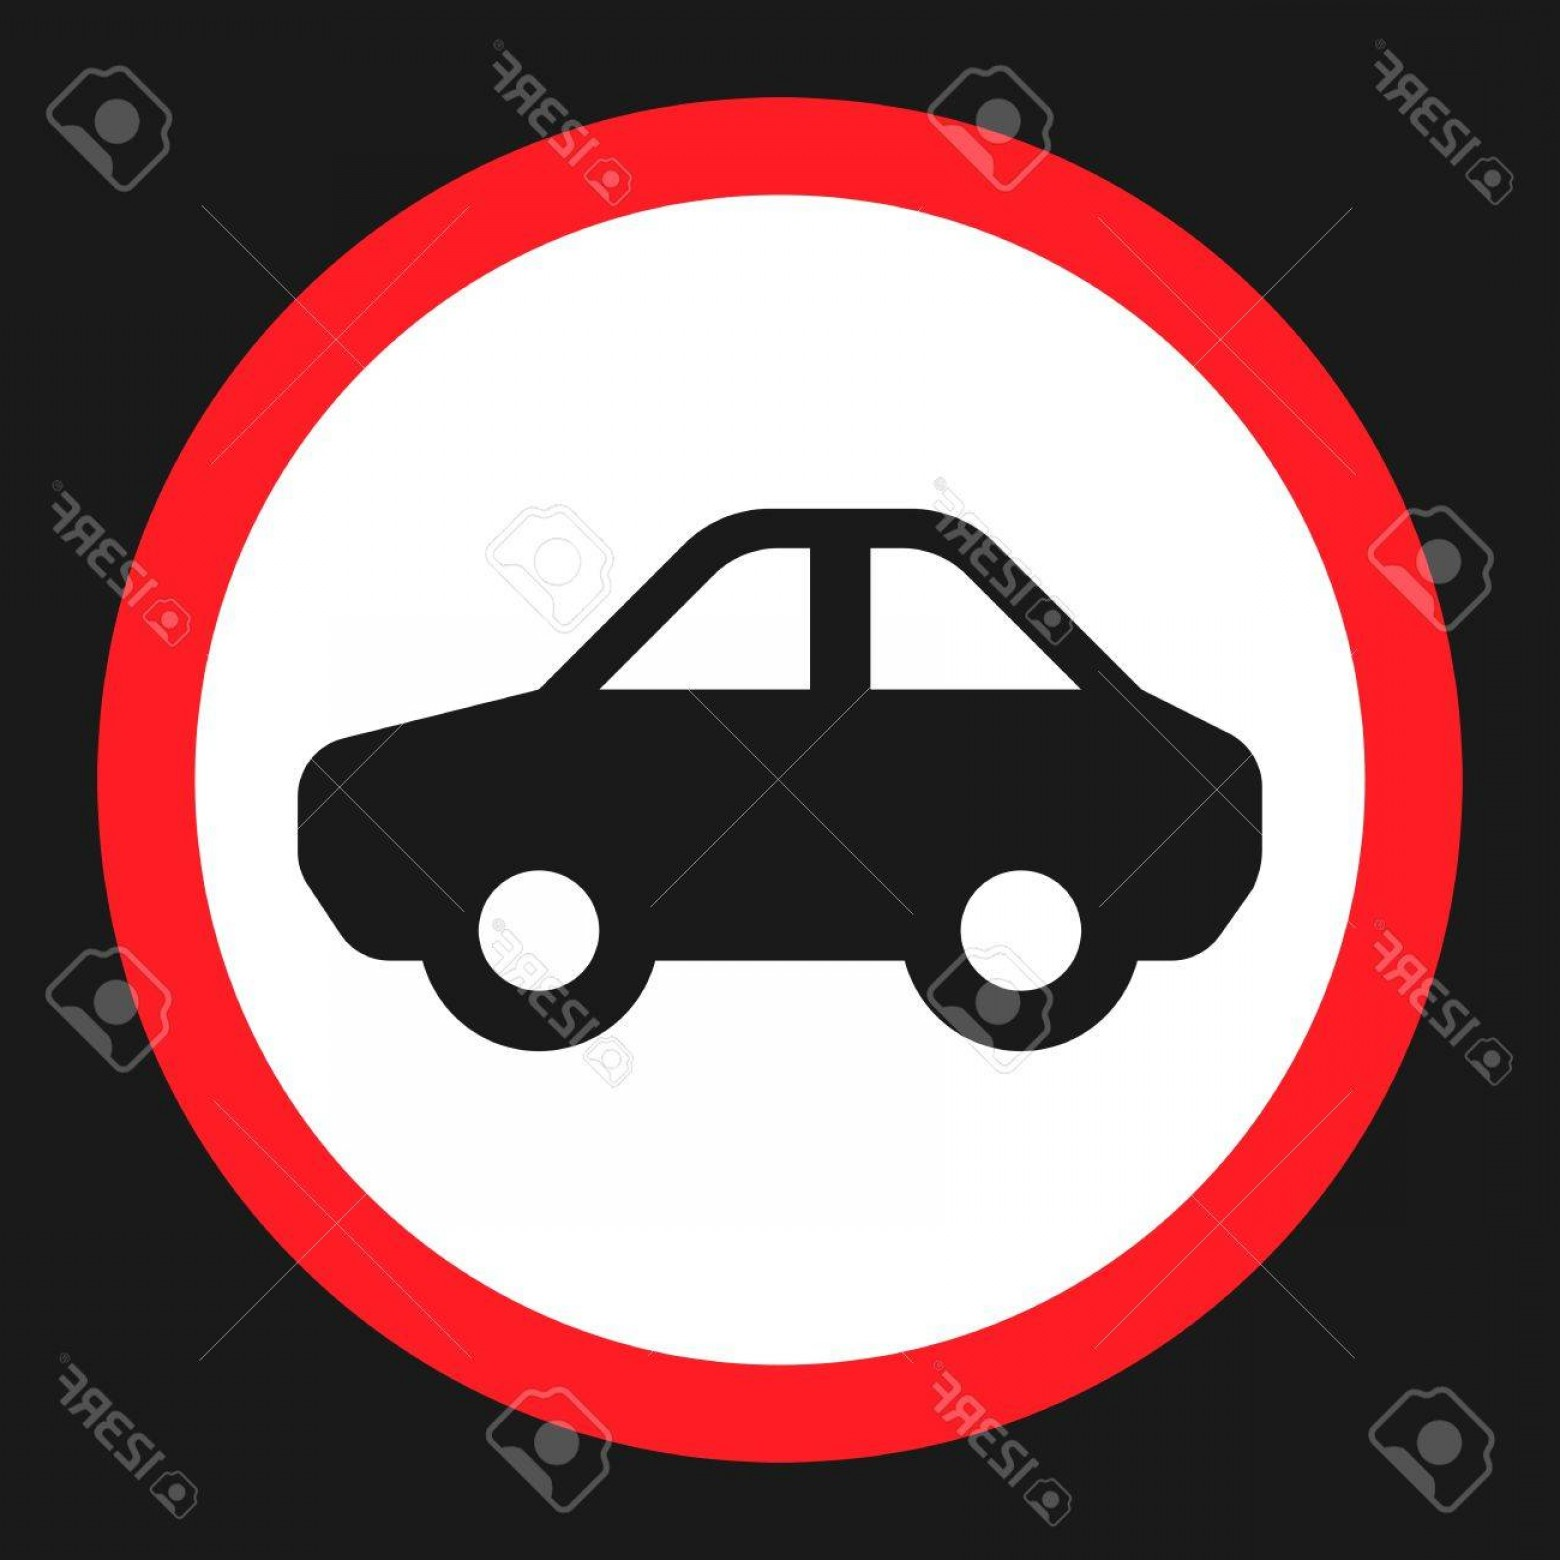 Motor Vector Graphics: Photostock Vector No Motor And Car Flat Icon Traffic And Road Sign Vector Graphics A Solid Pattern On A Black Backgrou